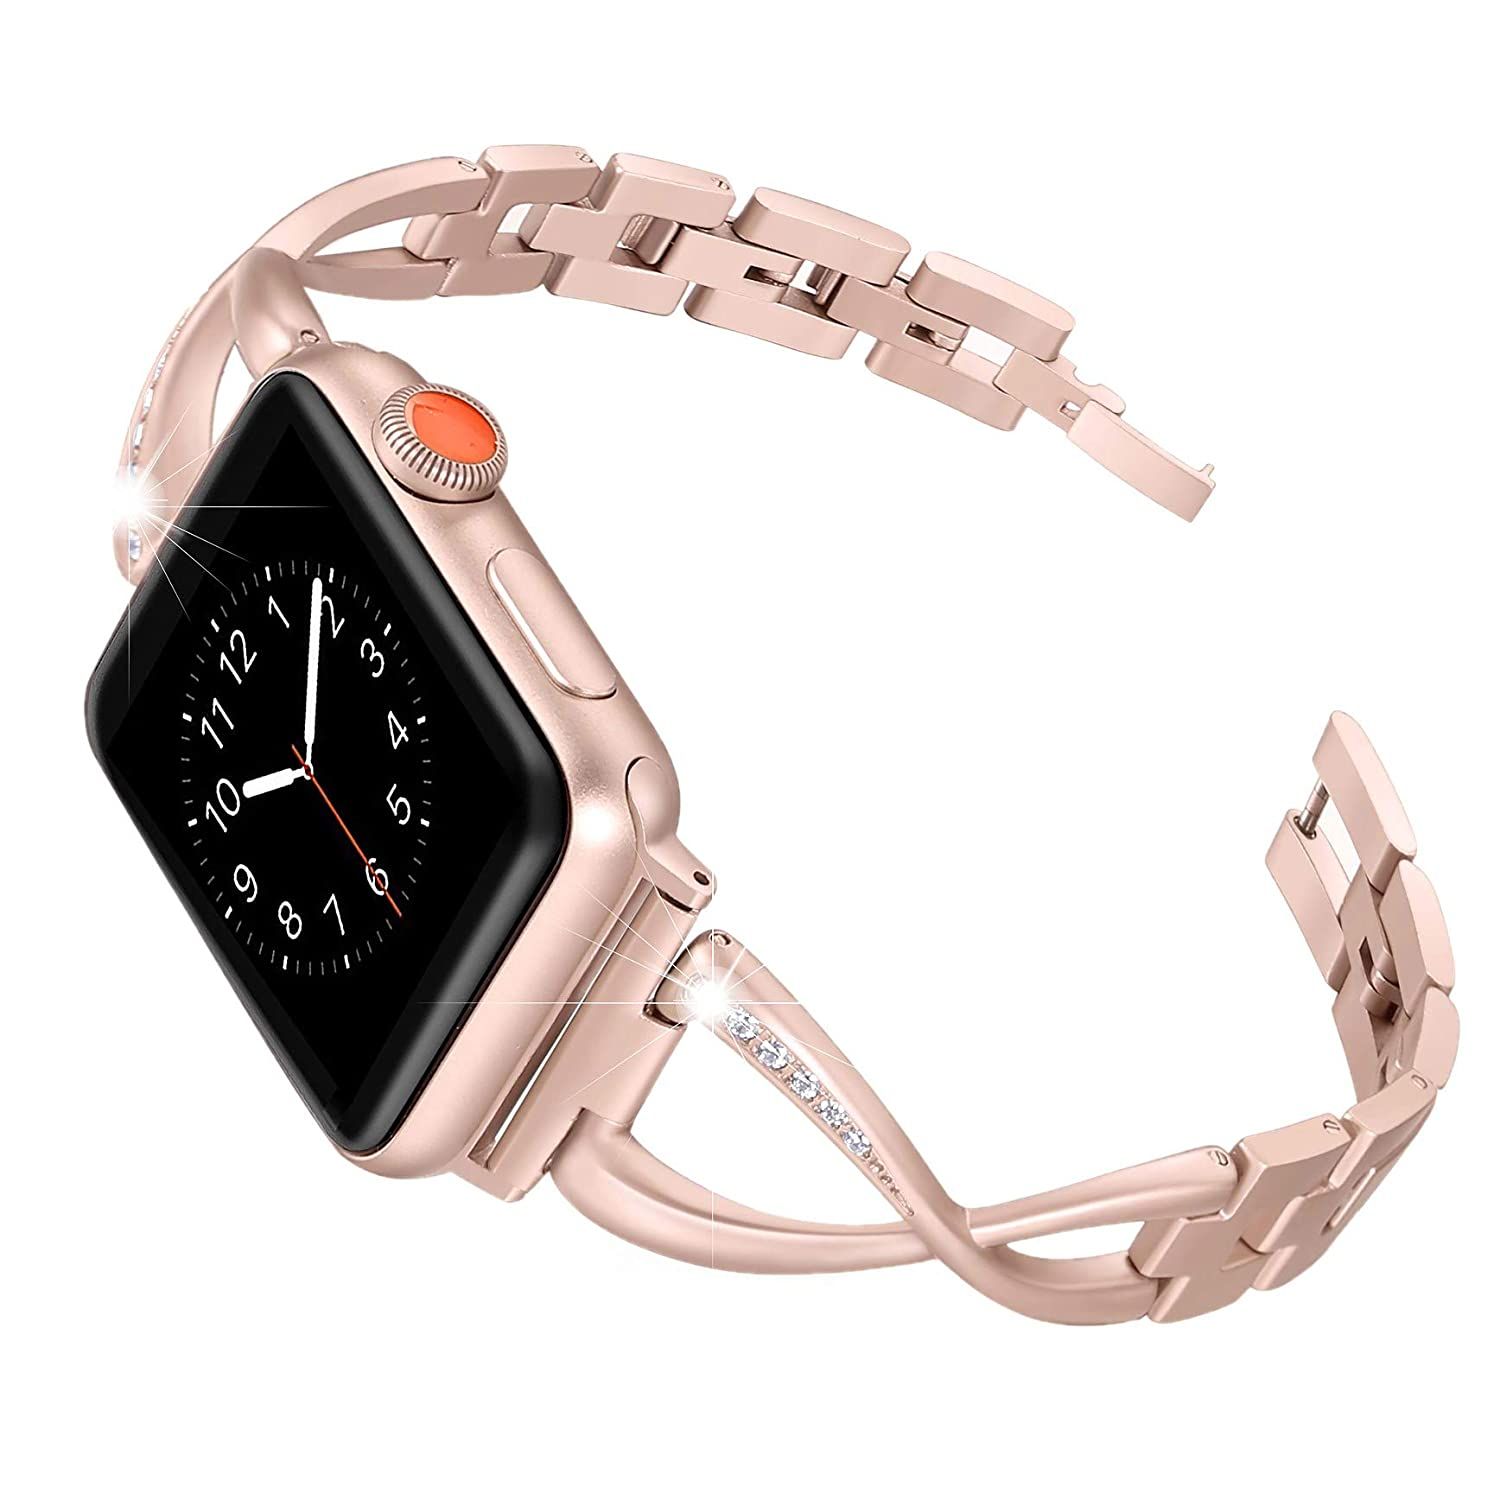 Secbolt Stainless Steel Band Compatible Apple Watch Band 38mm 40mm Women Iwatch Series 5/4/3/2/1 Accessories Metal Wristband X-Link Sport Strap, Series4 Gold